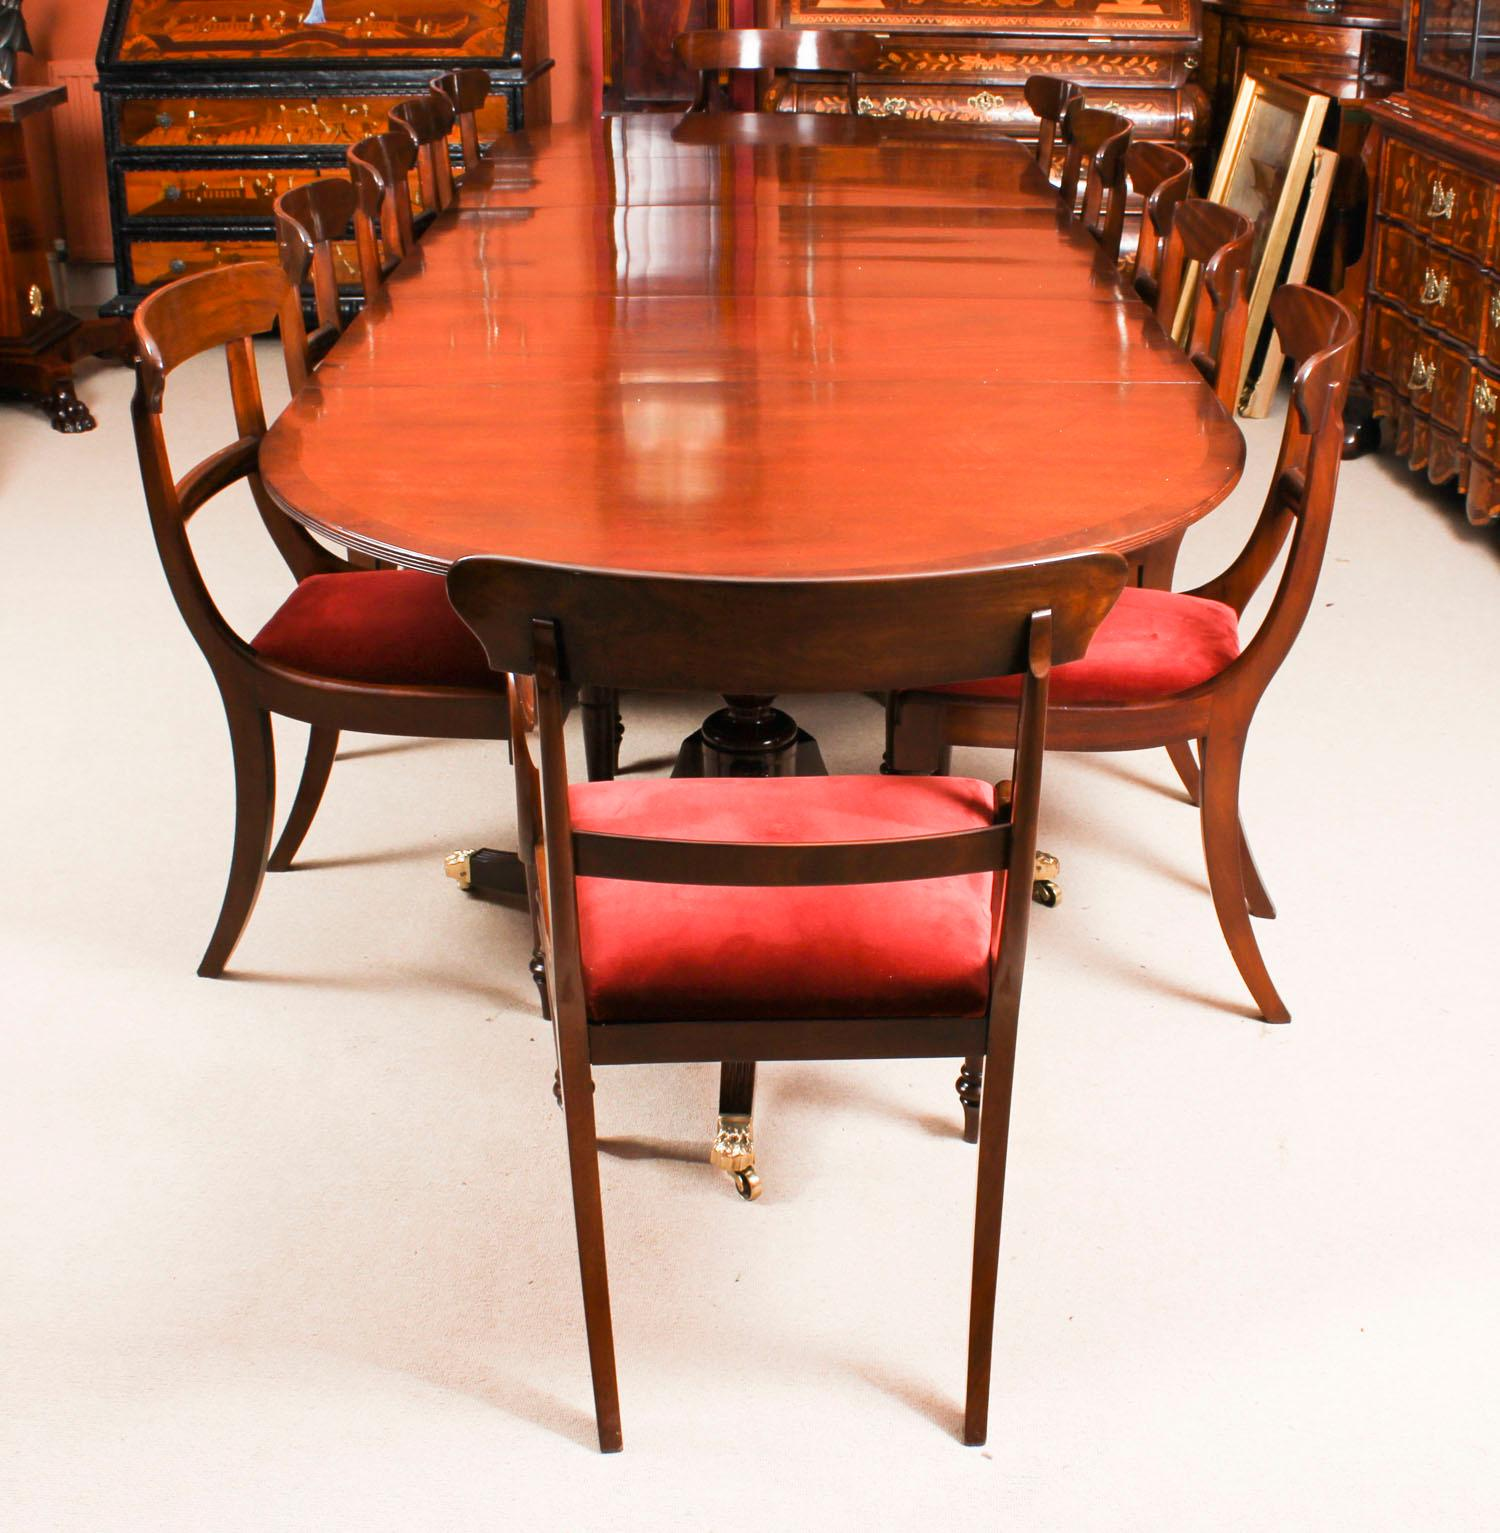 Antique Regency Revival Mahogany Dining Table And 12 Chairs 19th Century